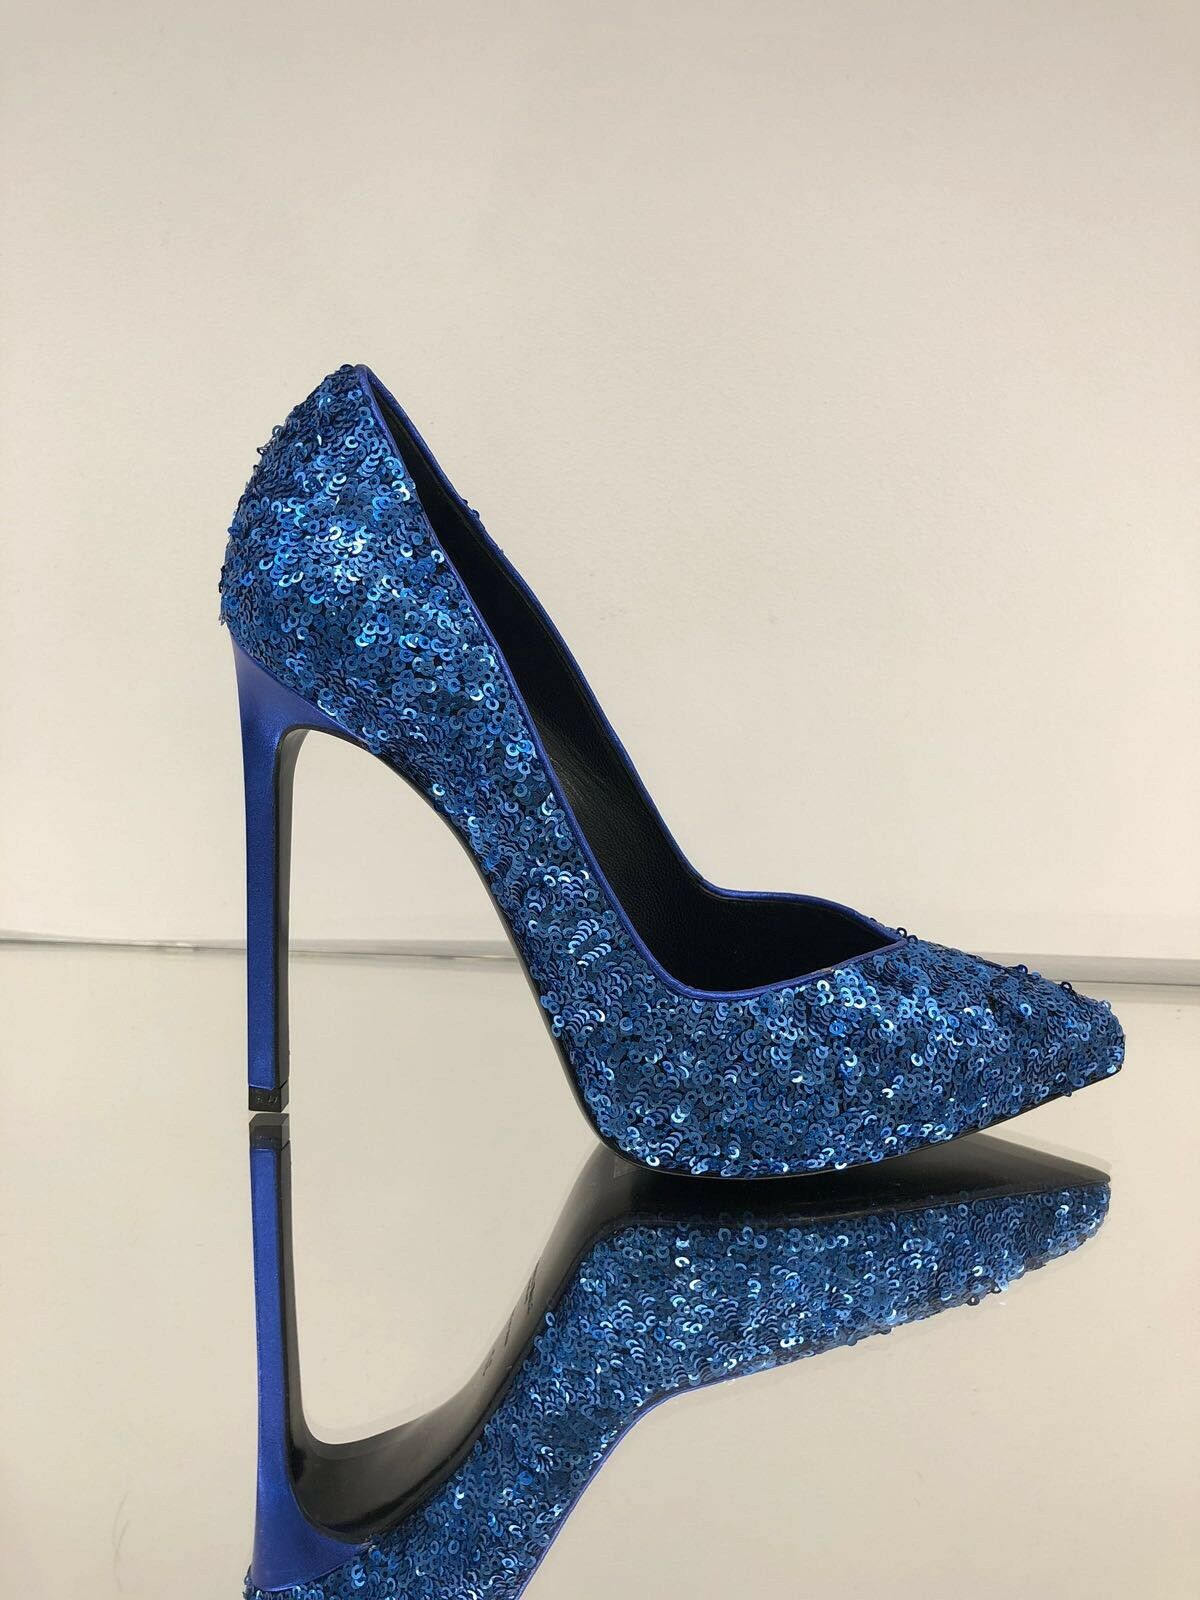 Saint Laurent YSL Paris 105 V V V Cut Sequin Pumps schuhe Royal Blau 38 f8729d